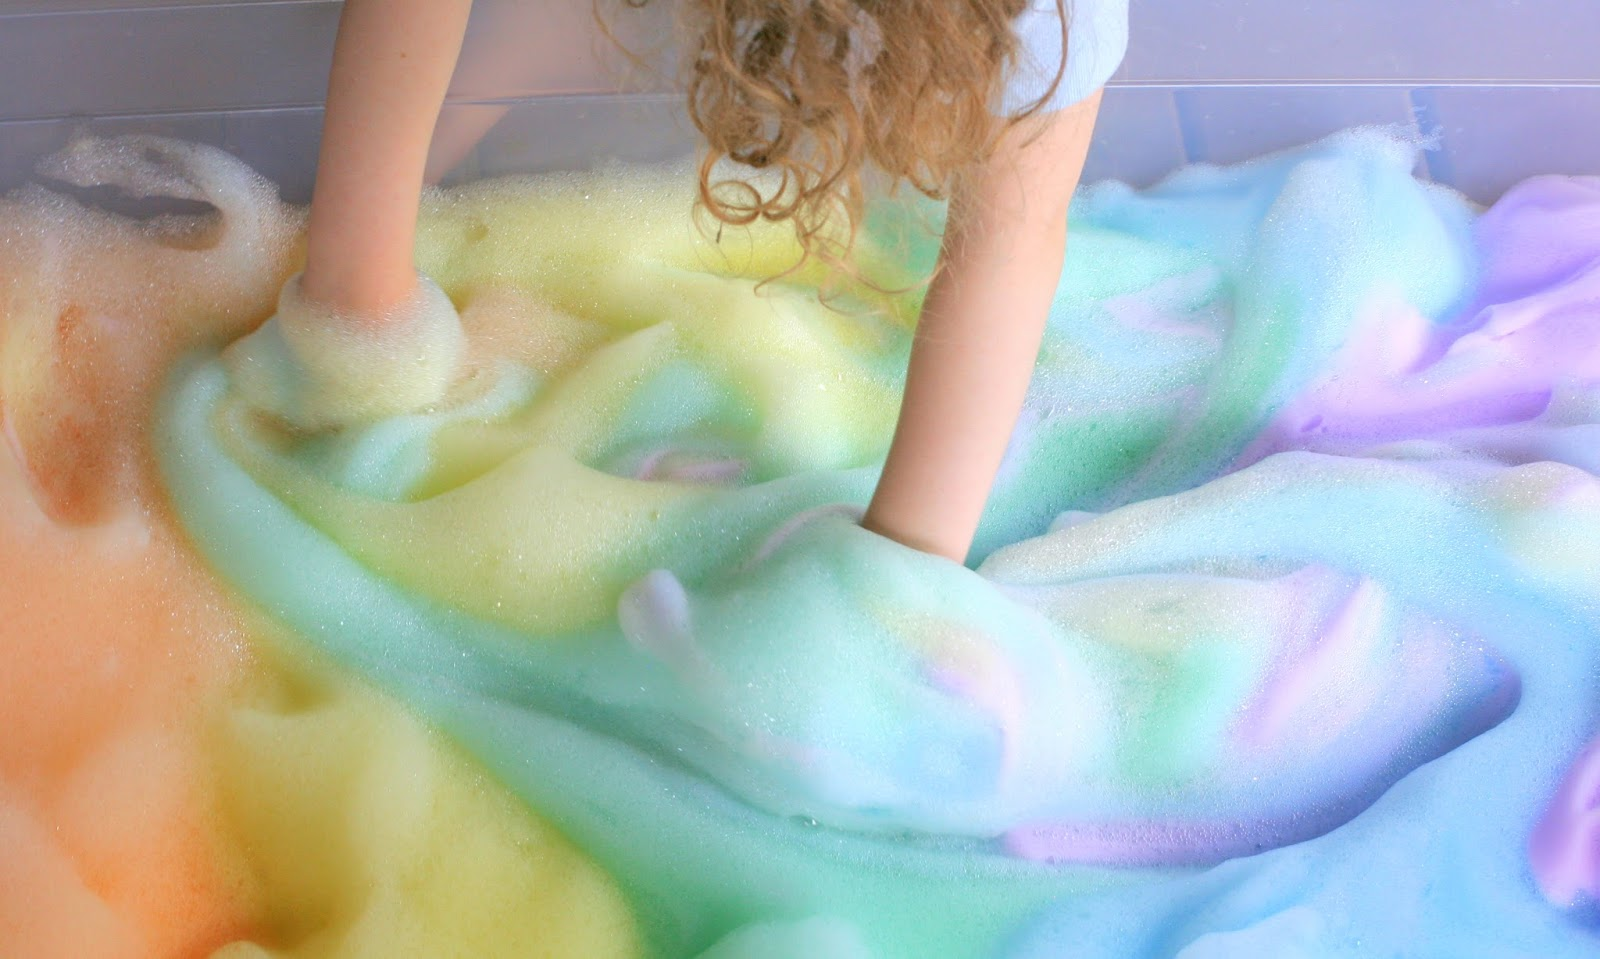 Web Coolness: How to make rainbow bubbles, boys and dolls, and no more celebrity baby photos?